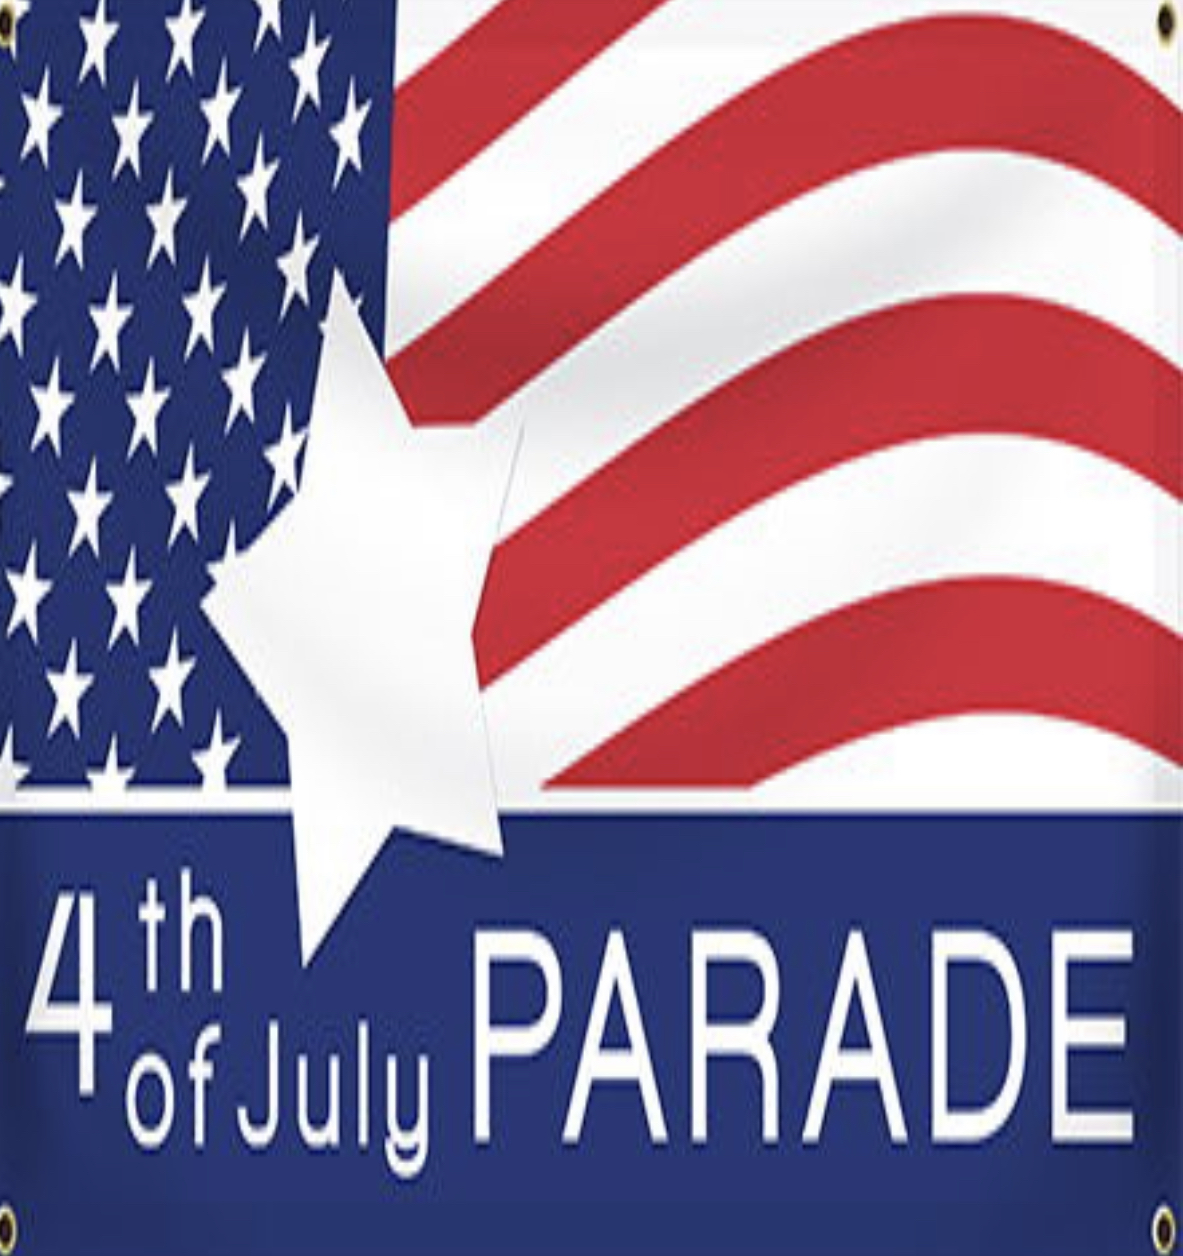 Flag Wavers 4th of July Parade  title=